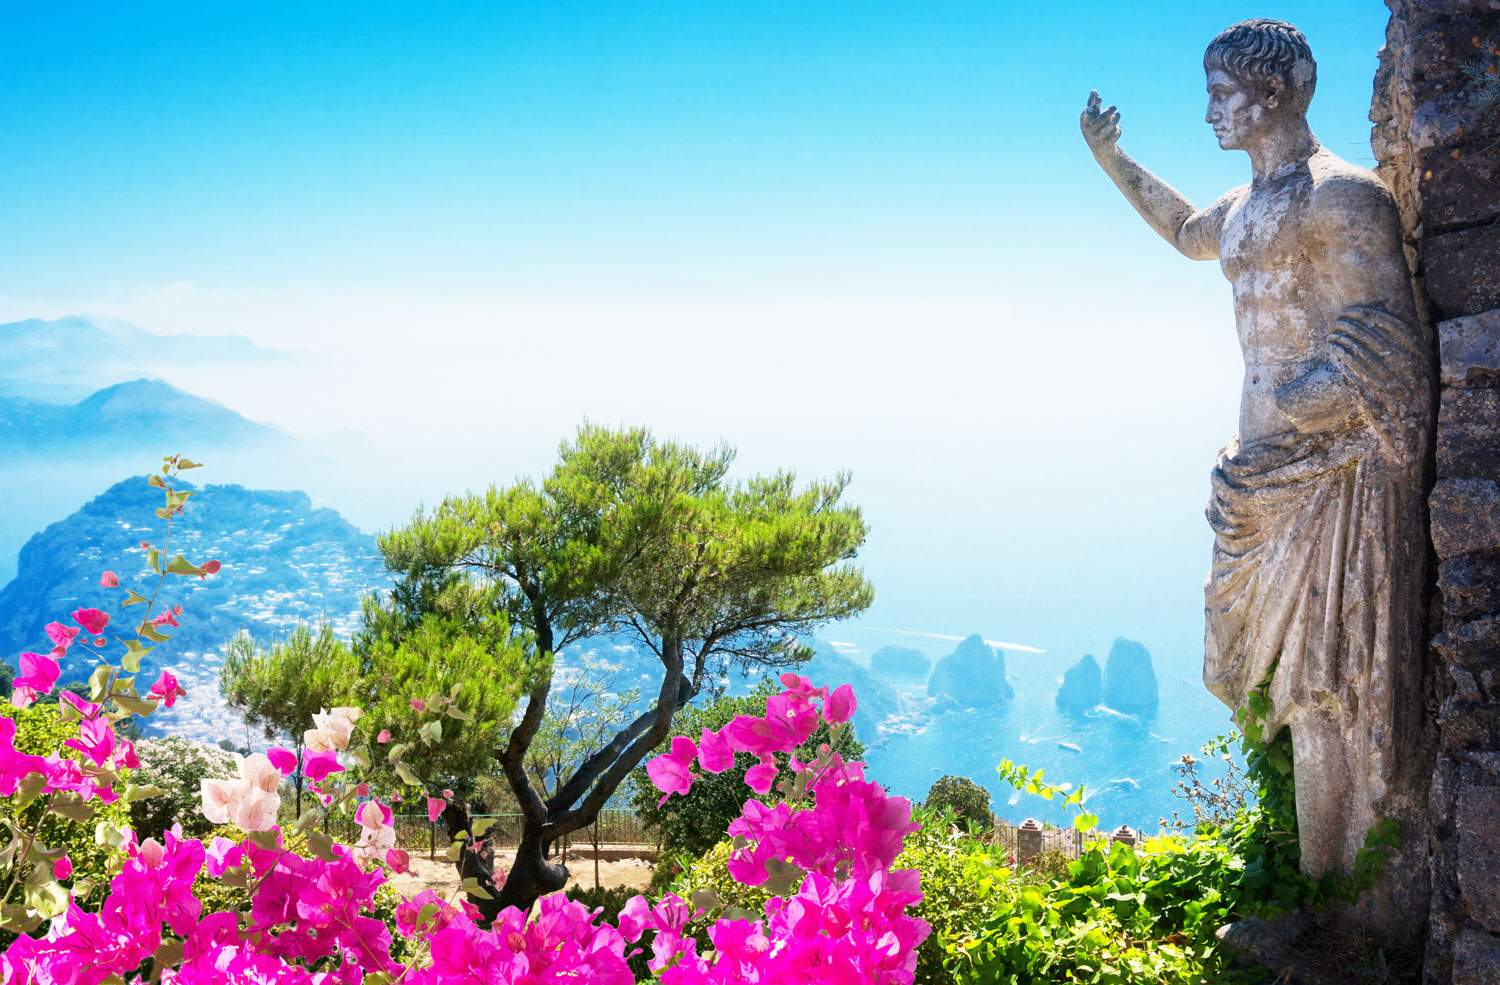 capri-amalfi-coast-statue-islands-italy-travel